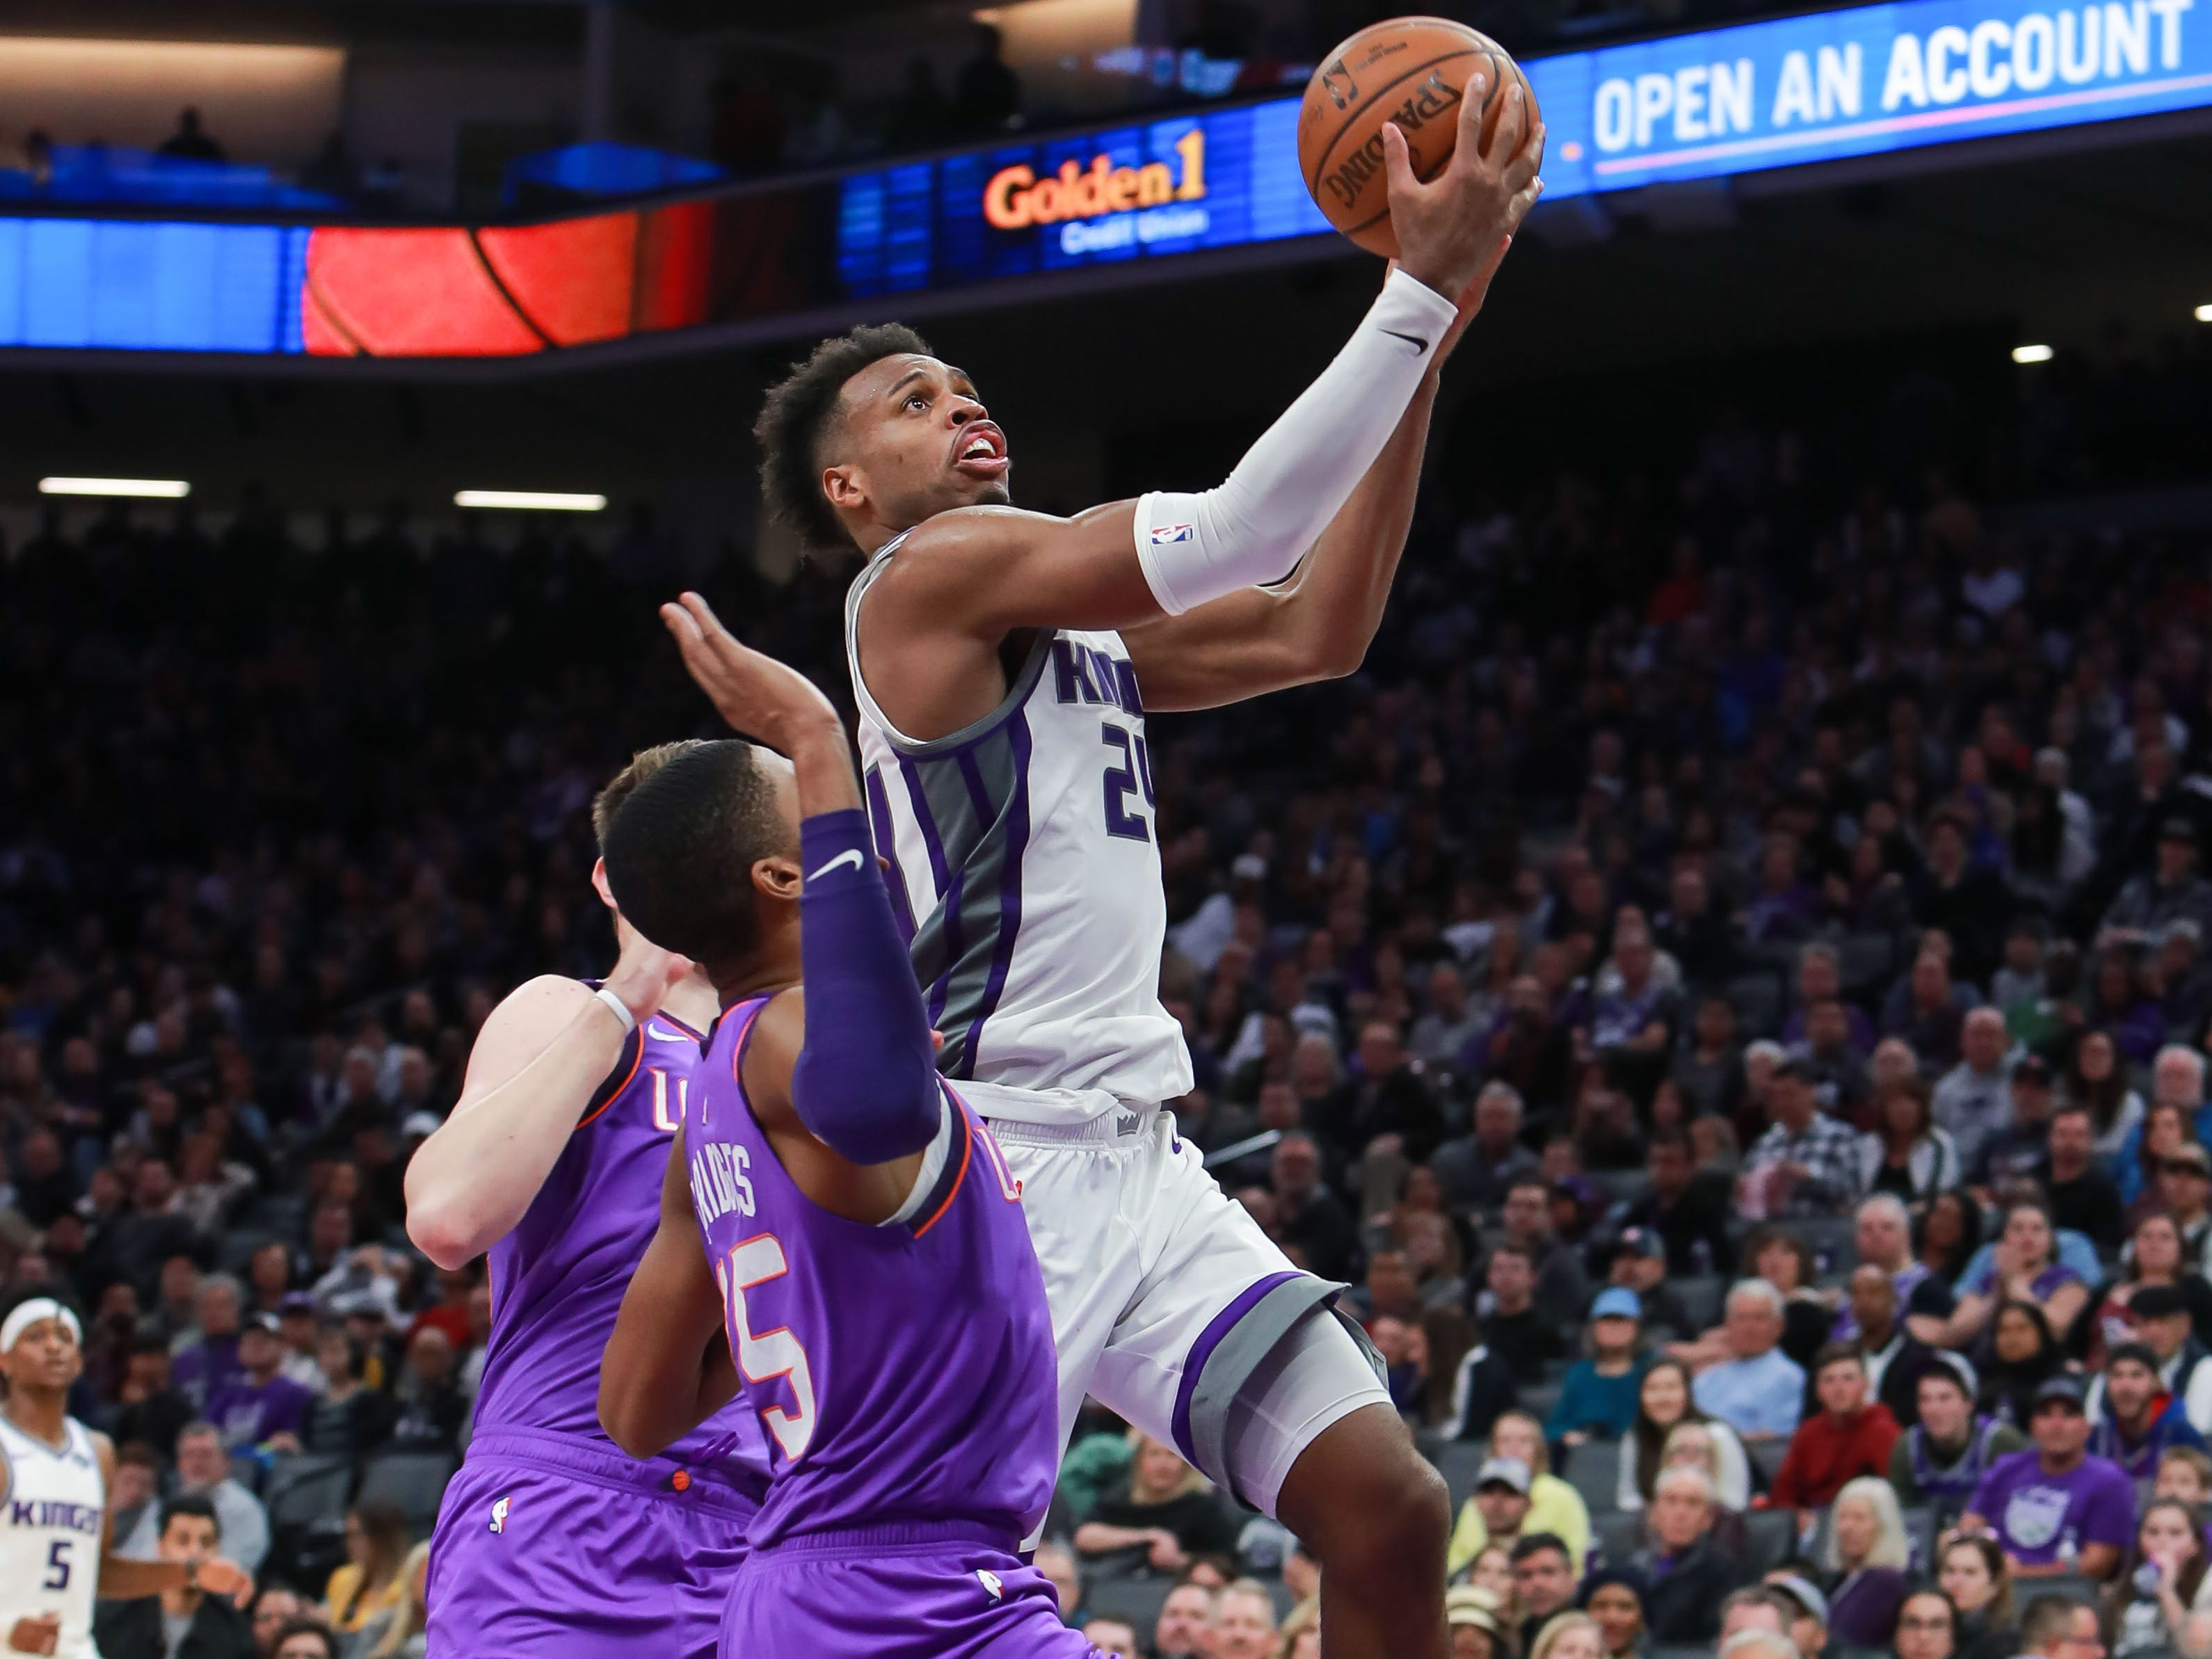 Mar 23, 2019; Sacramento, CA, USA; Sacramento Kings guard Buddy Hield (24) drives to the basket against Phoenix Suns forward Mikal Bridges (25)  during the fourth quarter at Golden 1 Center.